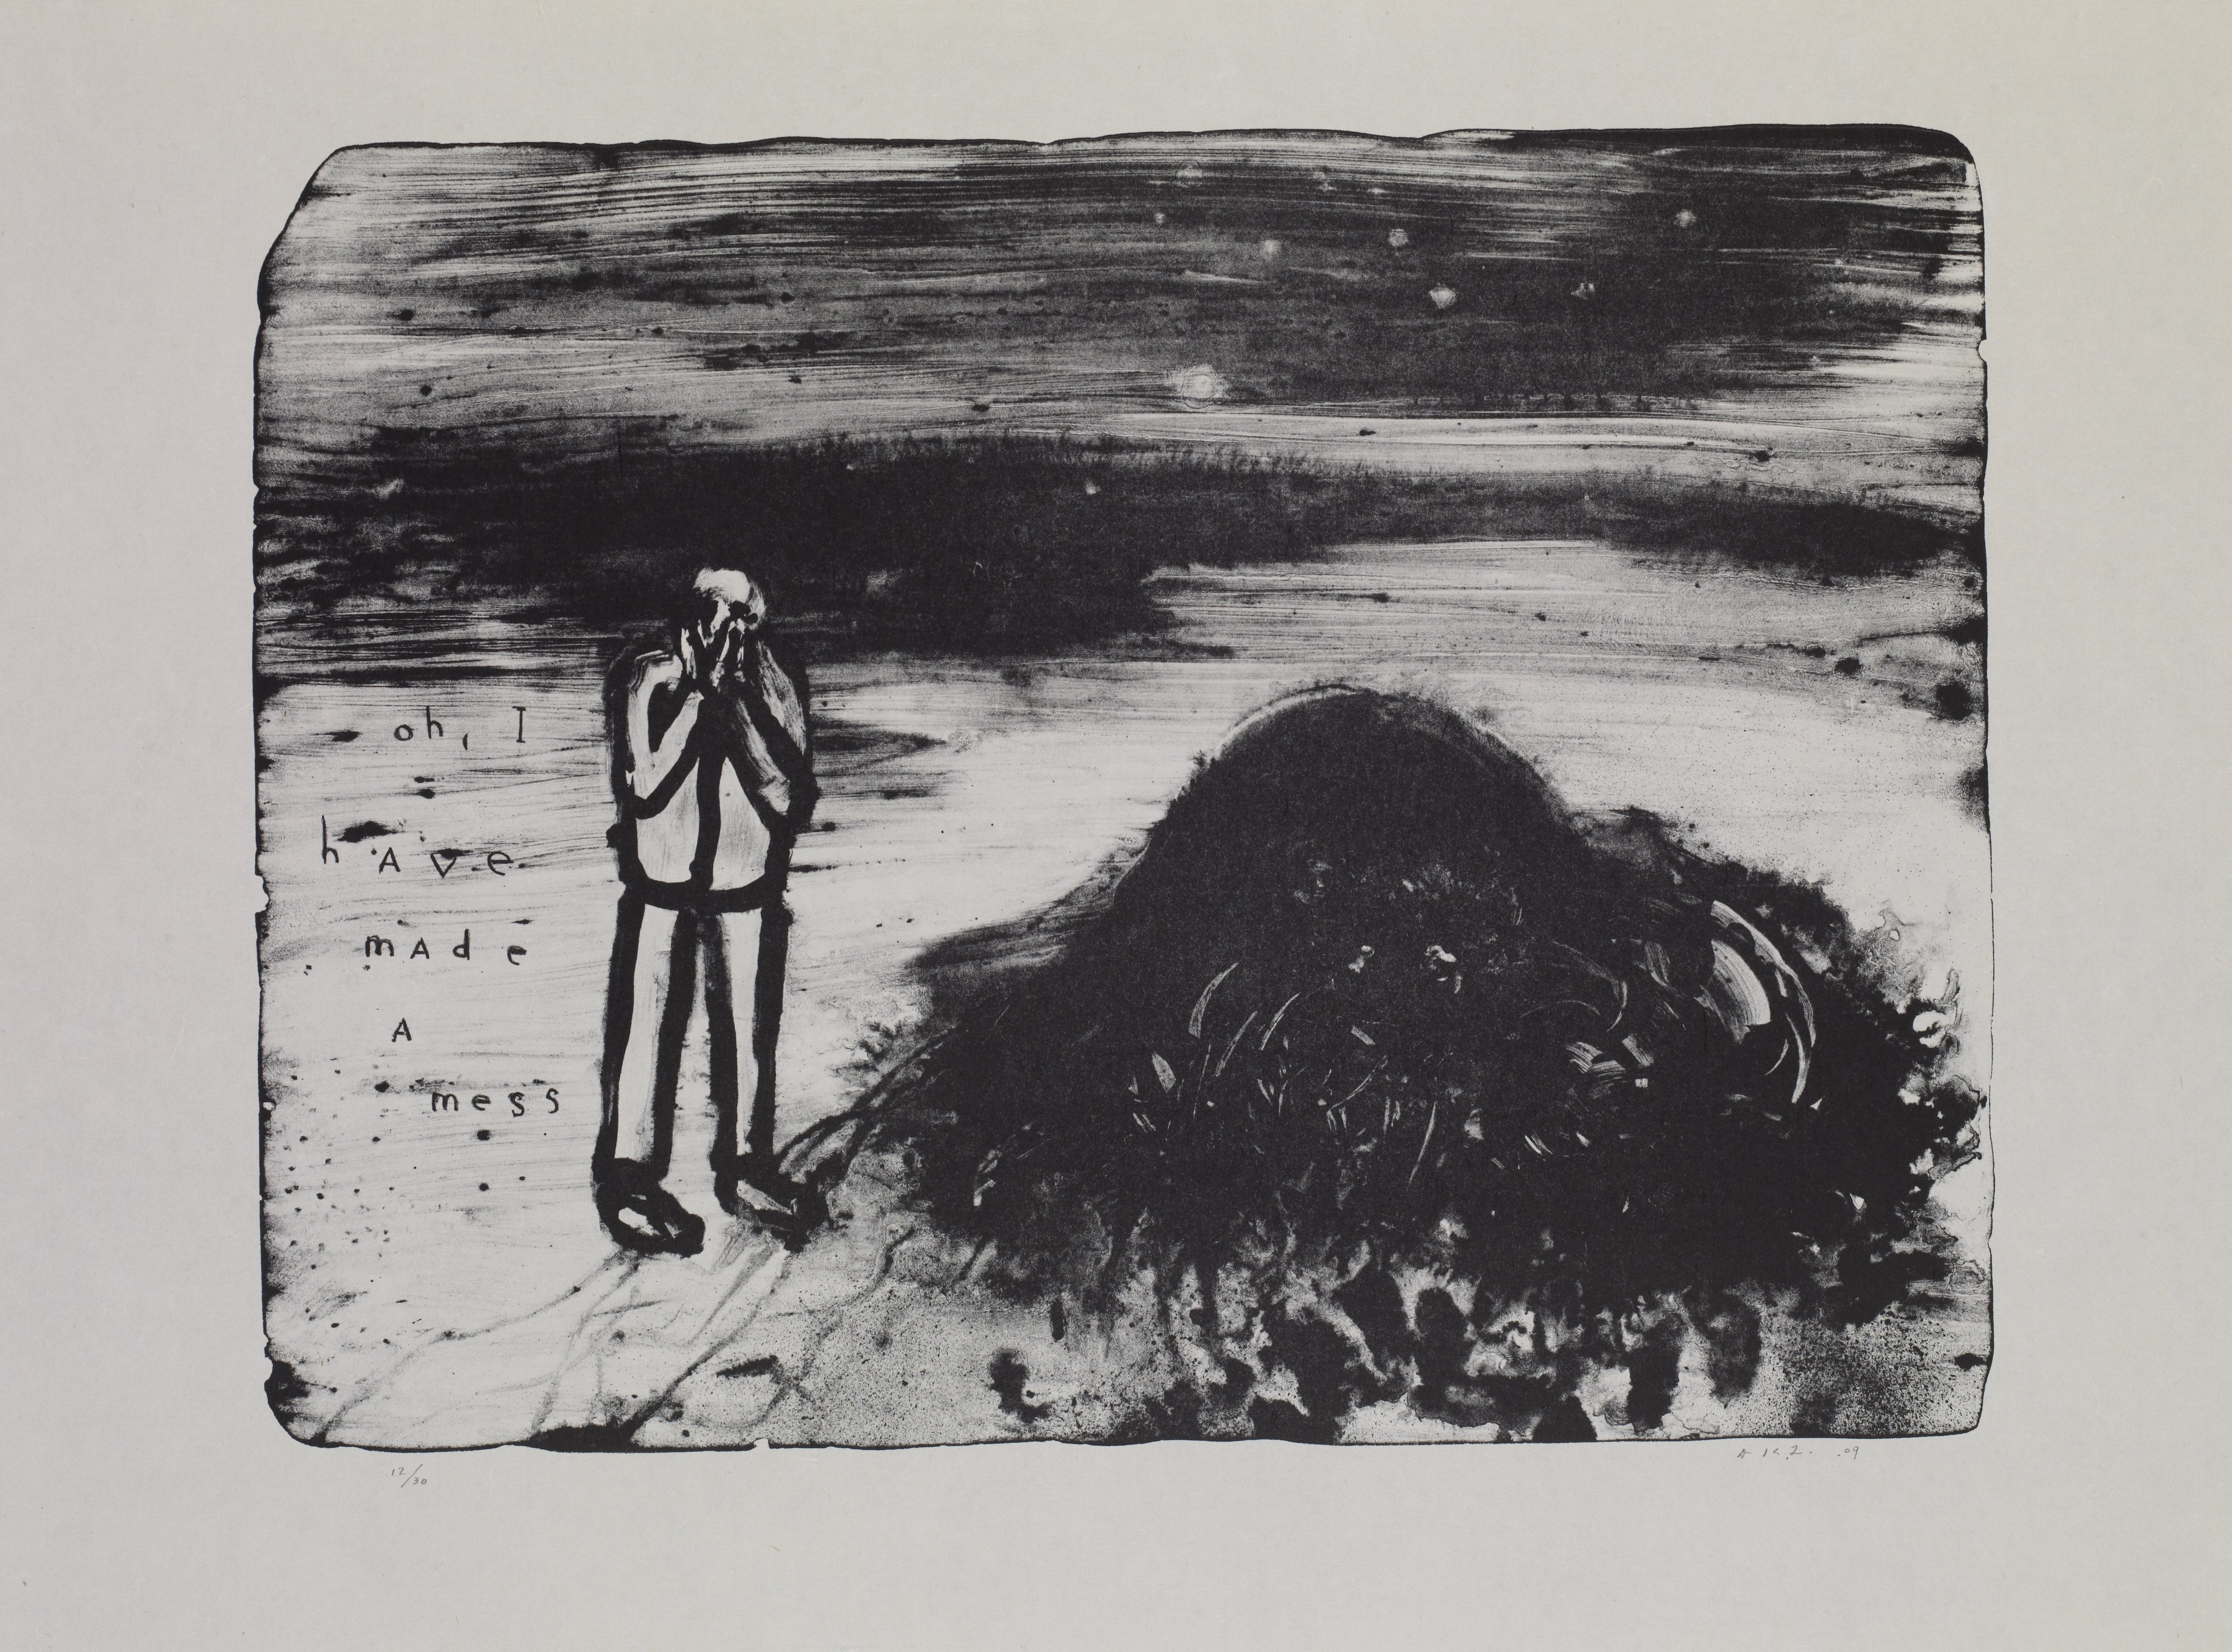 David Lynch, Oh I Have Made a Mess, 2009, Courtesy of David Lynch and Item Editions